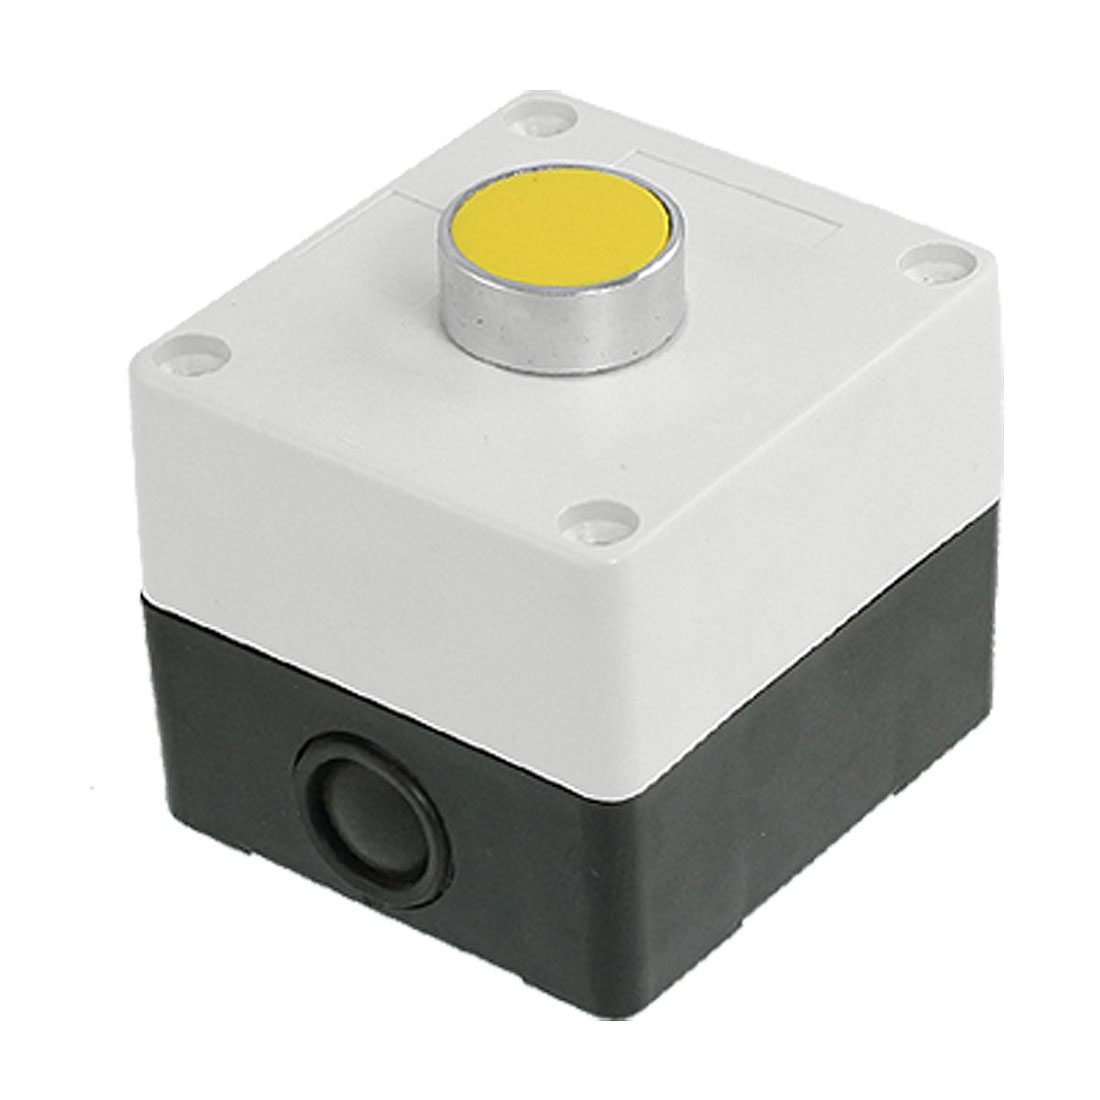 AC 240V 3A Yellow Sign Flat Momentary Push Button Switch Station Box 1 NO N/O